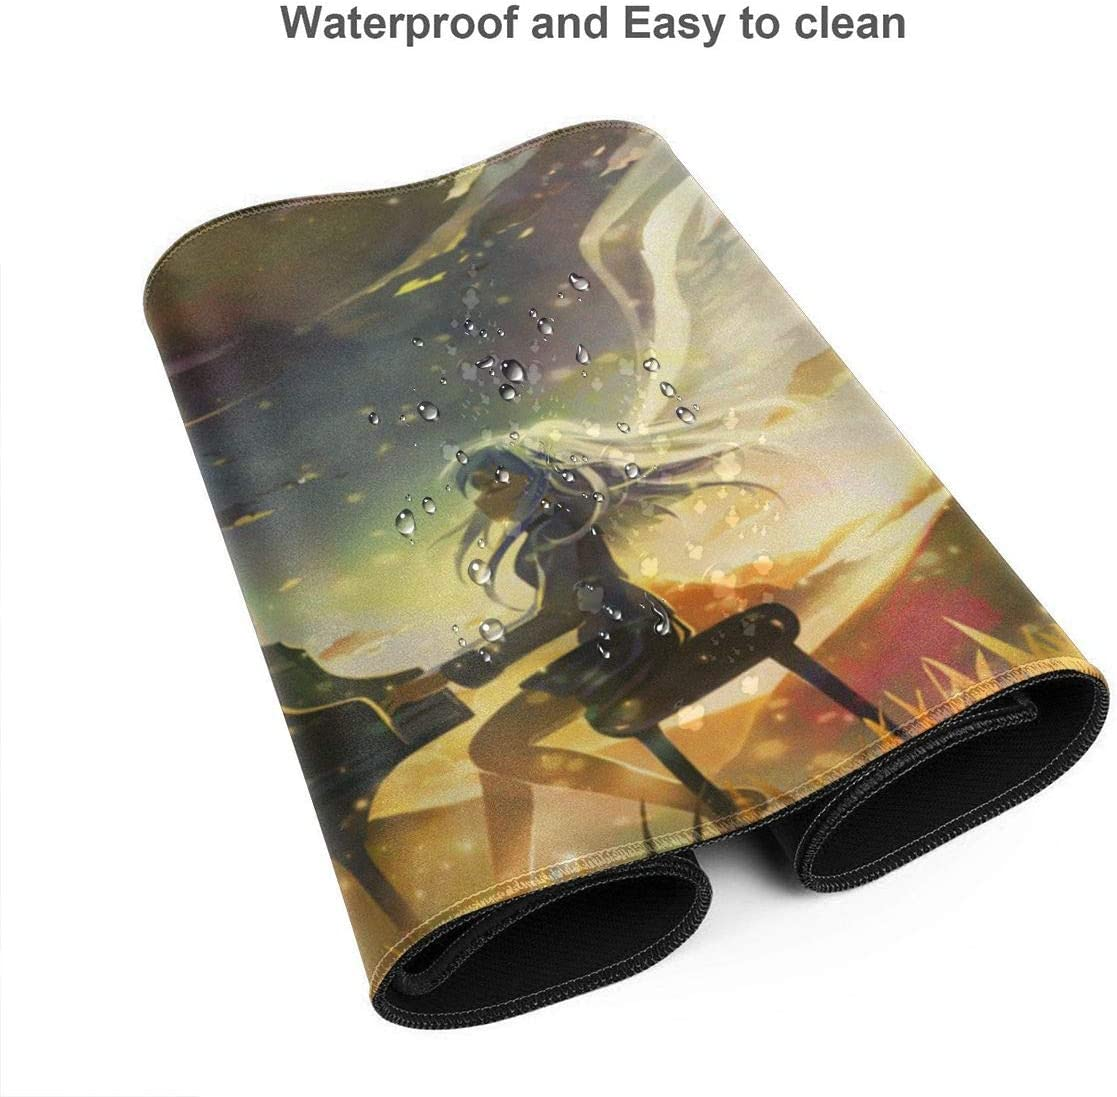 Anime Large Gaming Mouse Pad Custom Designed Stitched Edge Waterproof Non-Slip Rubber Bottom Mouse Pad Ideal for Laptops and Computers15.8x35.5 in Angel Beats